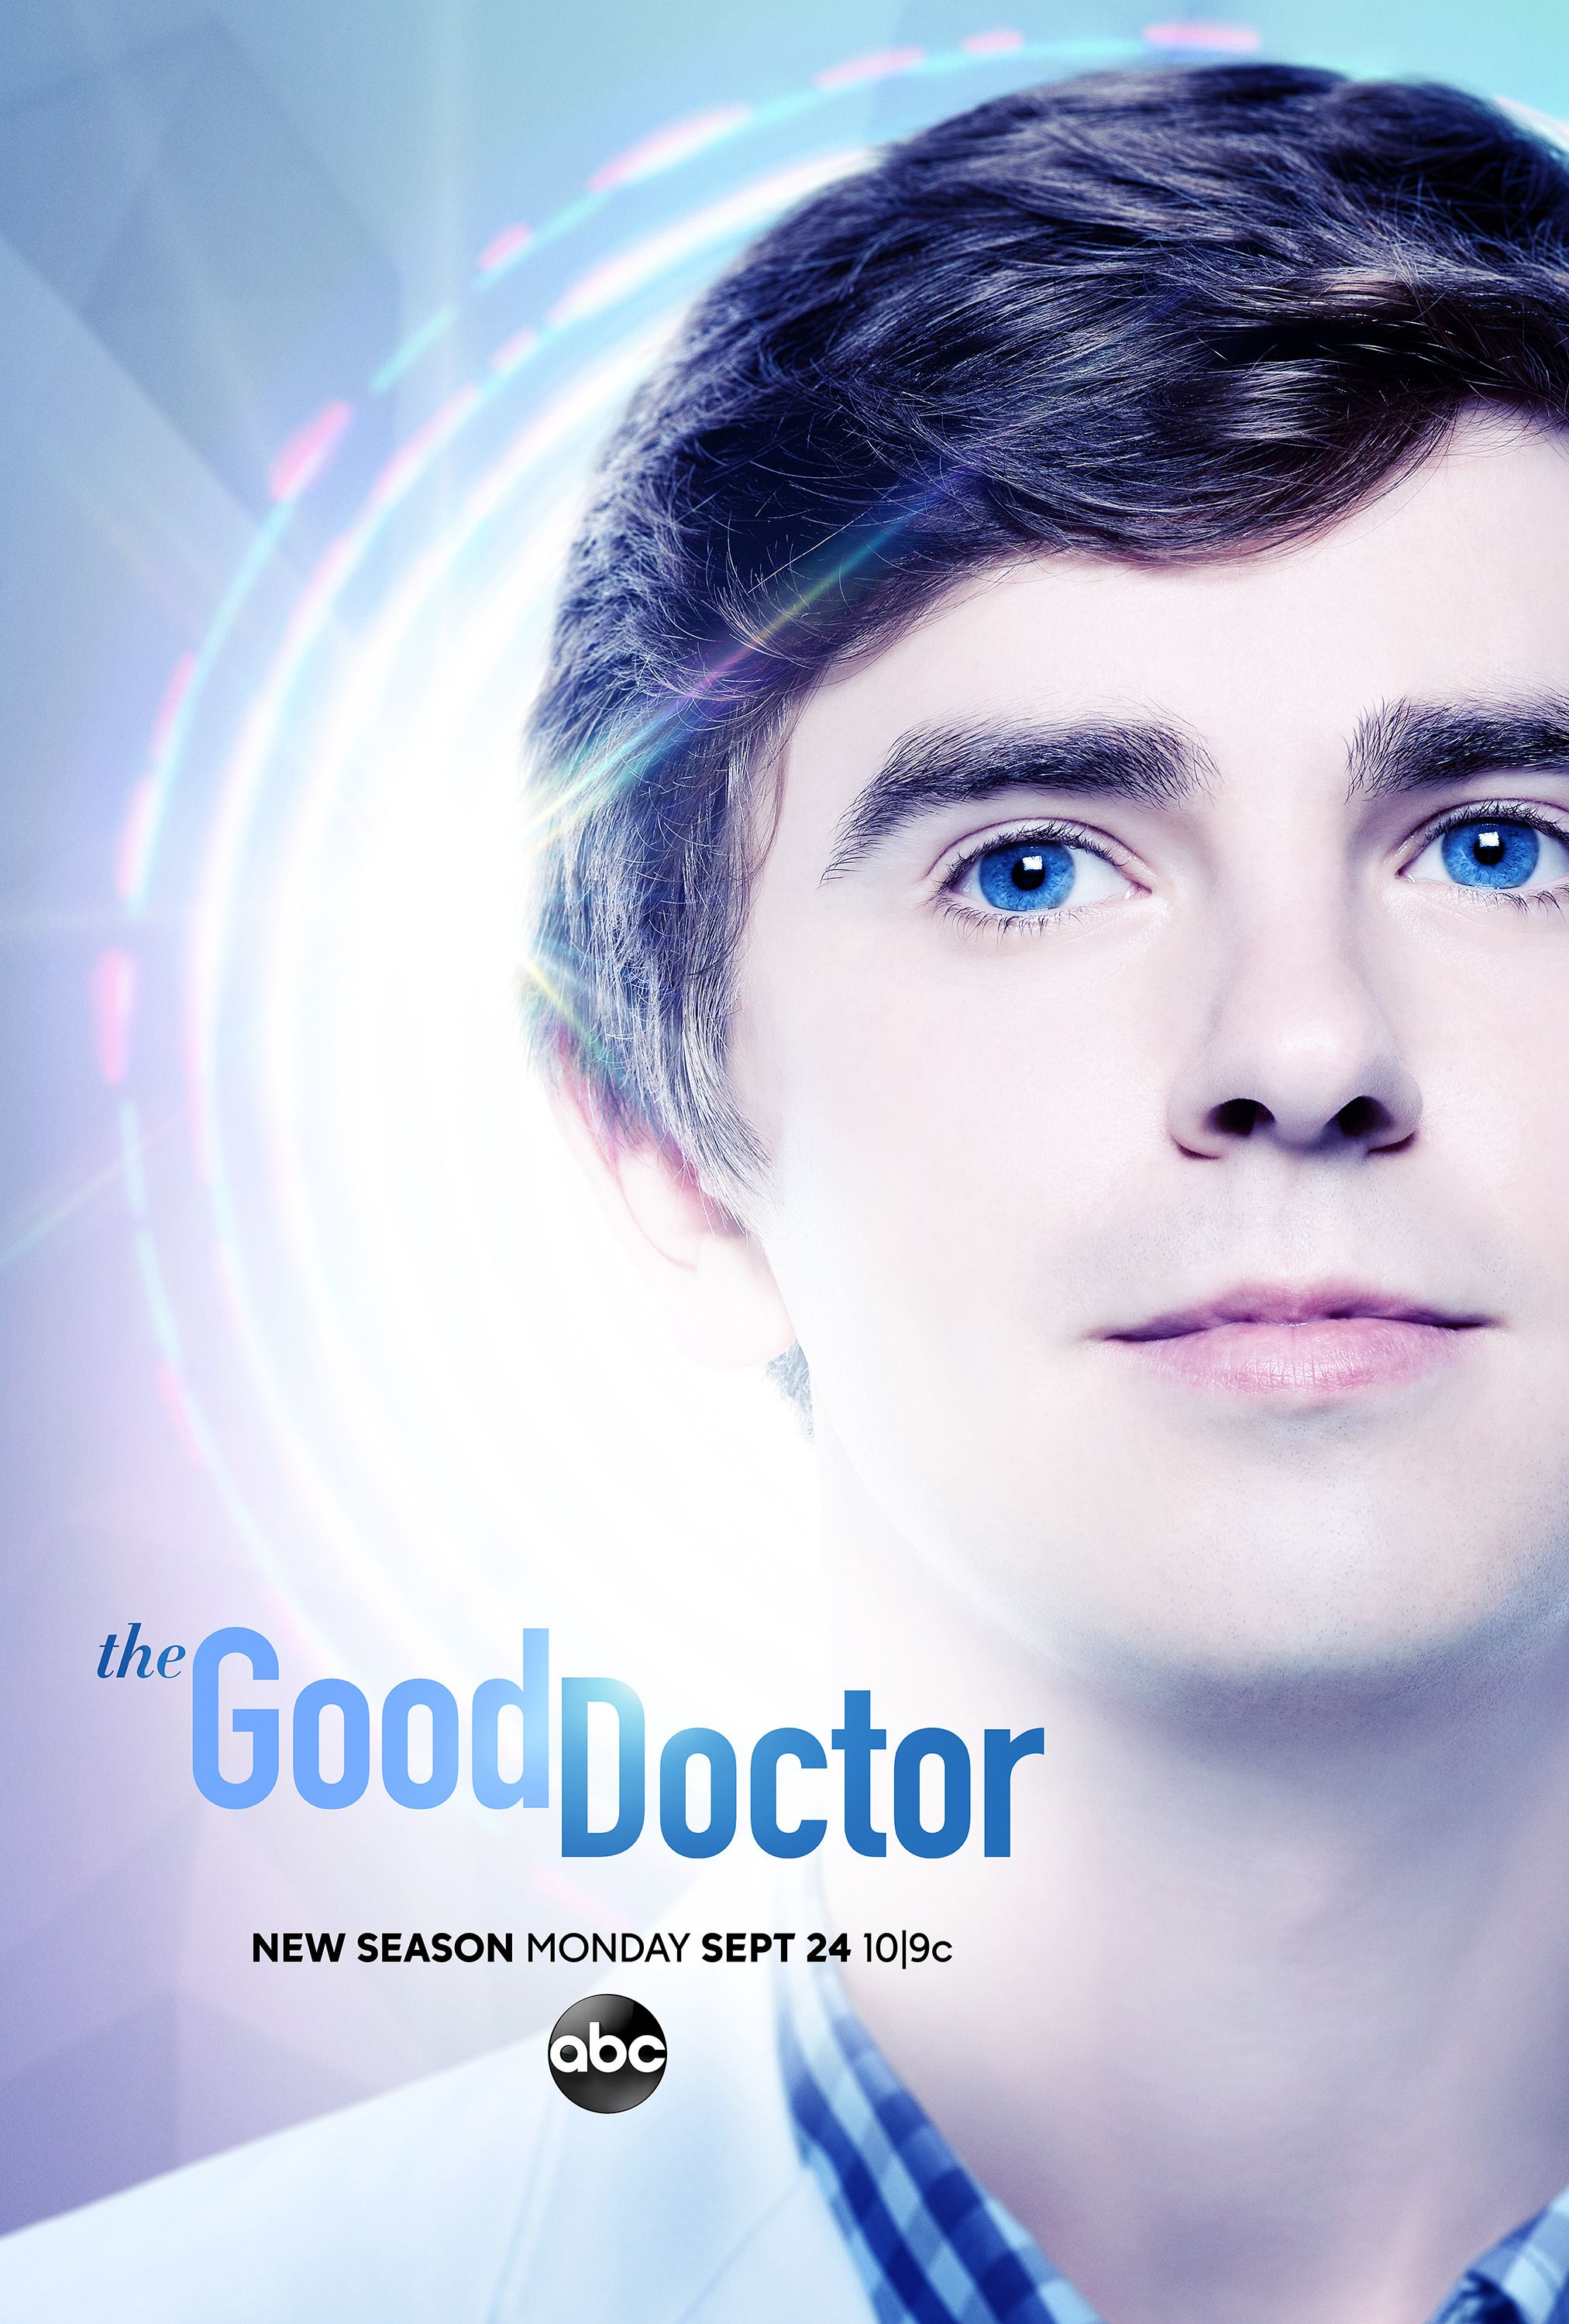 Return To The Main Poster Page For The Good Doctor 2 Of 2